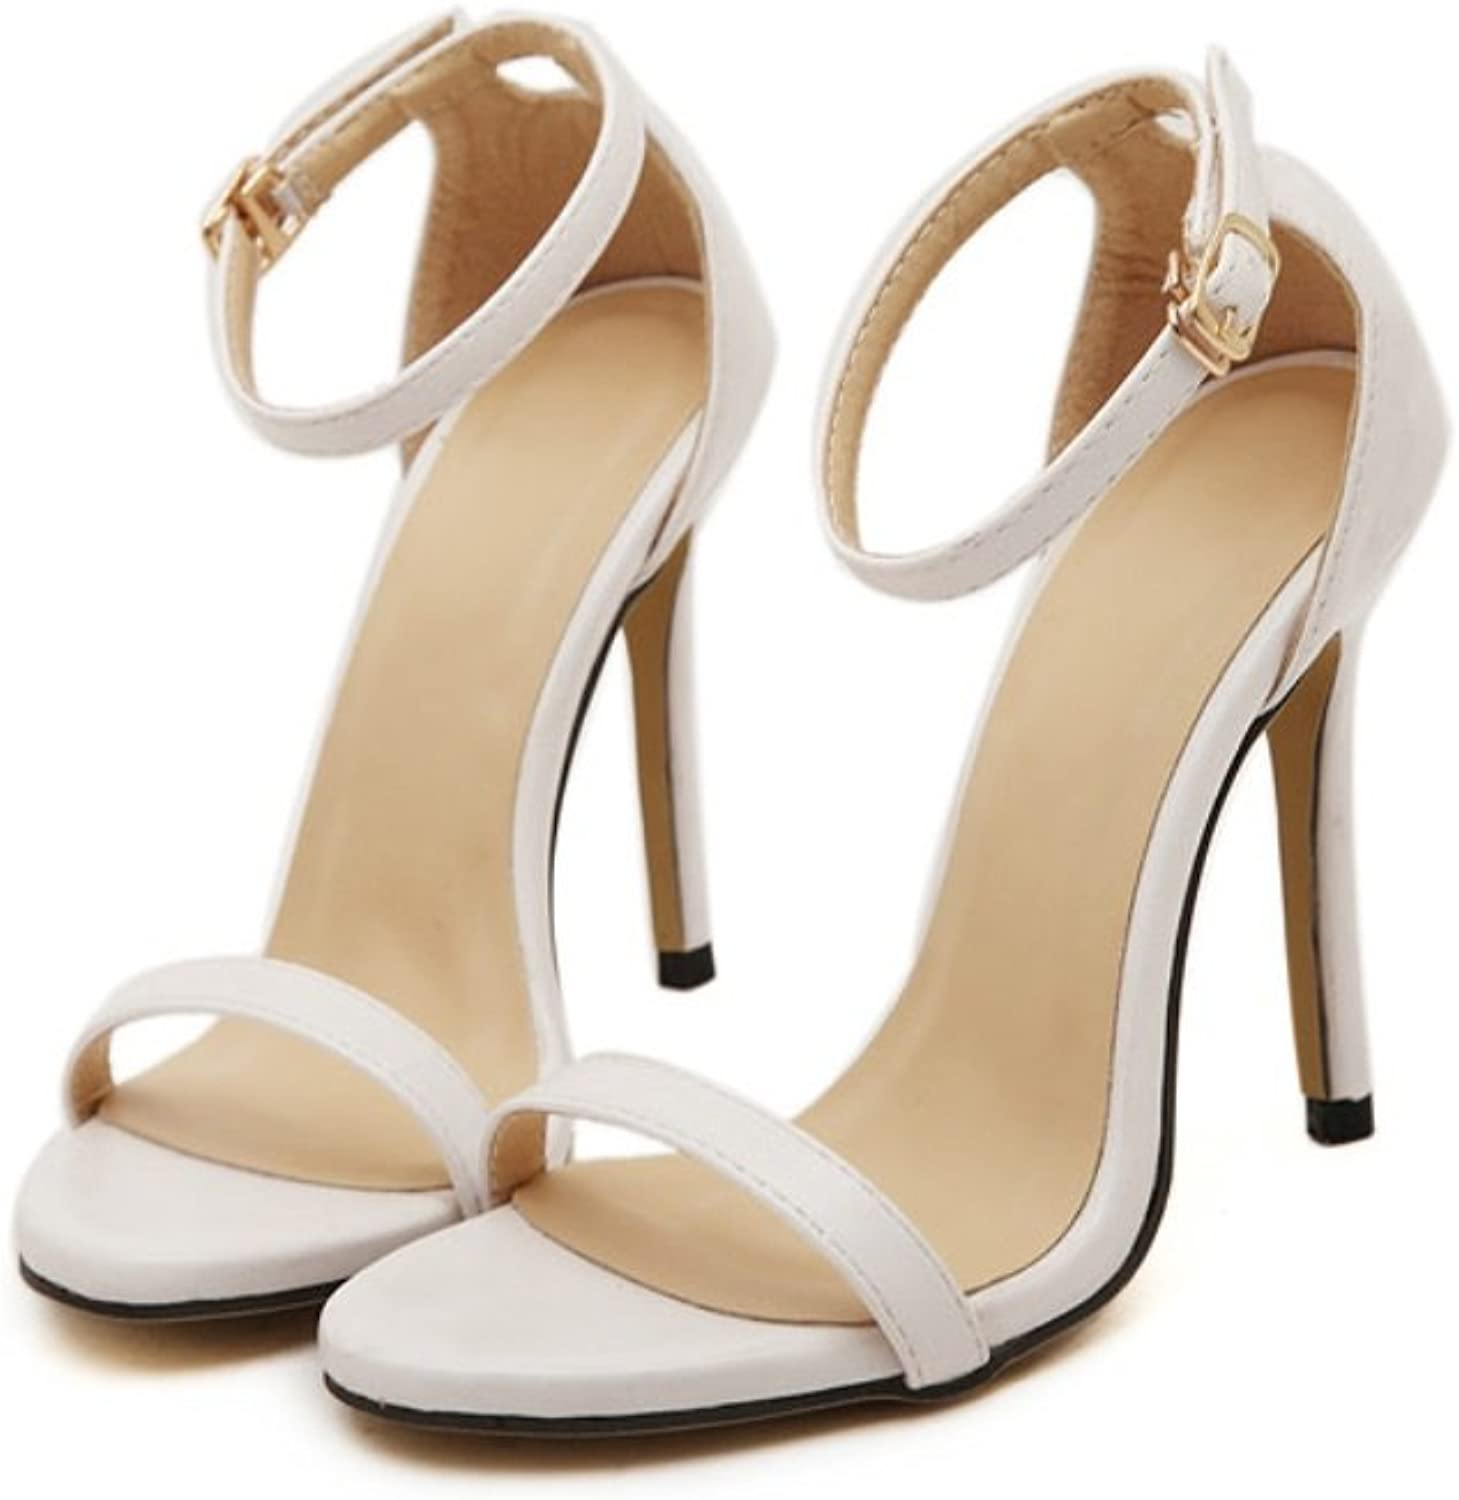 Ladies Fine Superb High Heel-Fashion Hollow Fish Mouth Sandals-Pure color Toe Pierced One Word Buckle Belt shoes-Comfort Heel Sandals Zhhzz